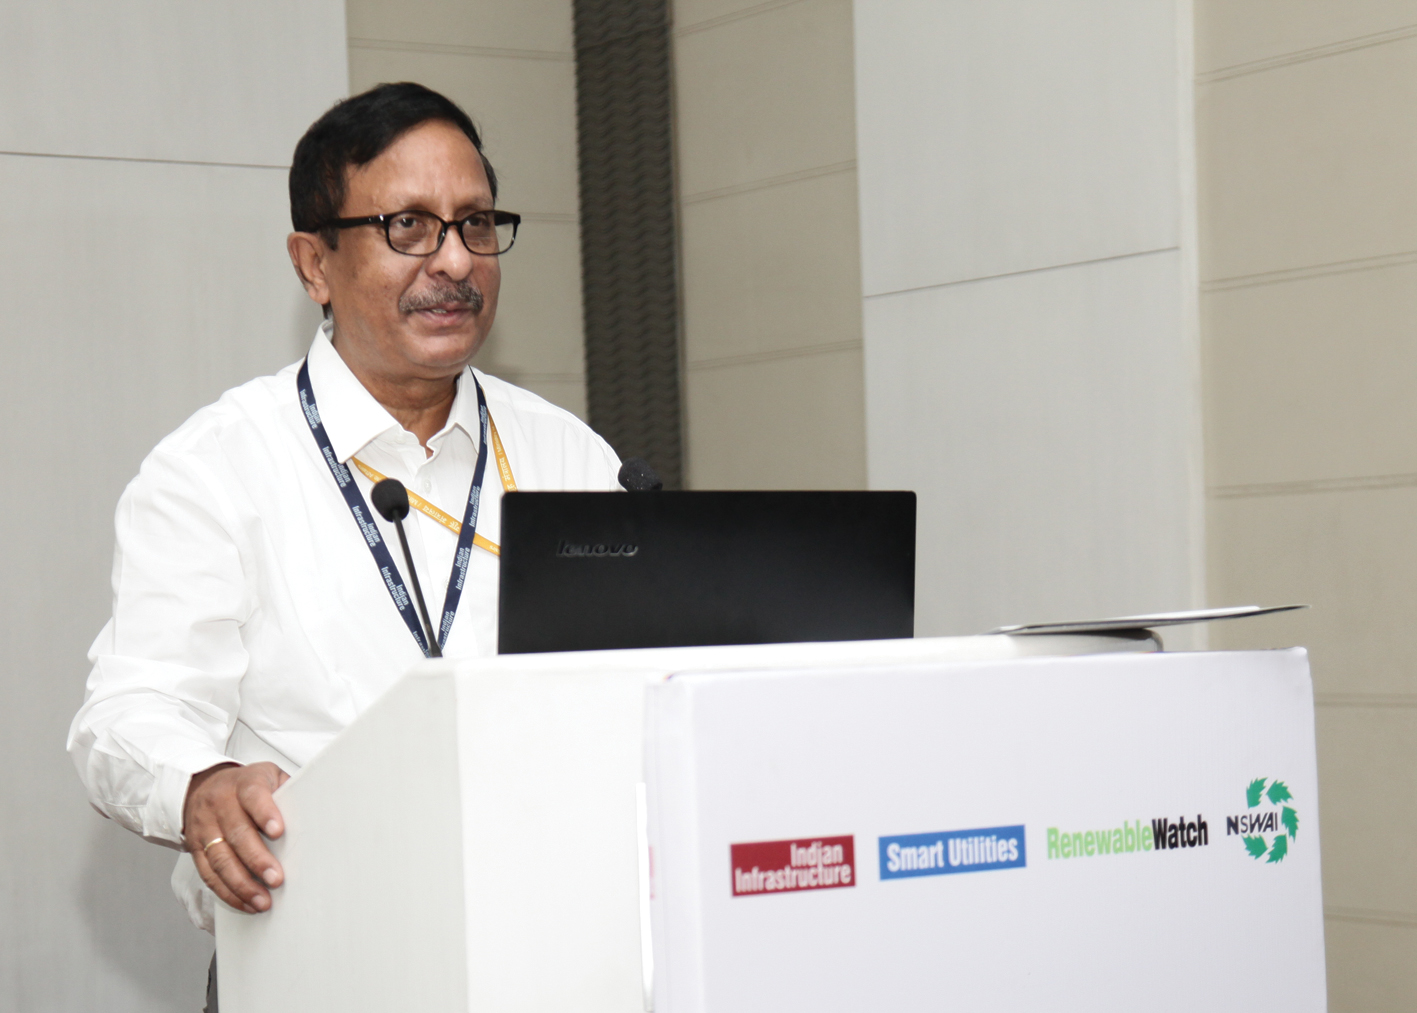 Dr D.K. Khare, Director, MNRE, speaking at Renewable Watch's conference on Waste to Energy